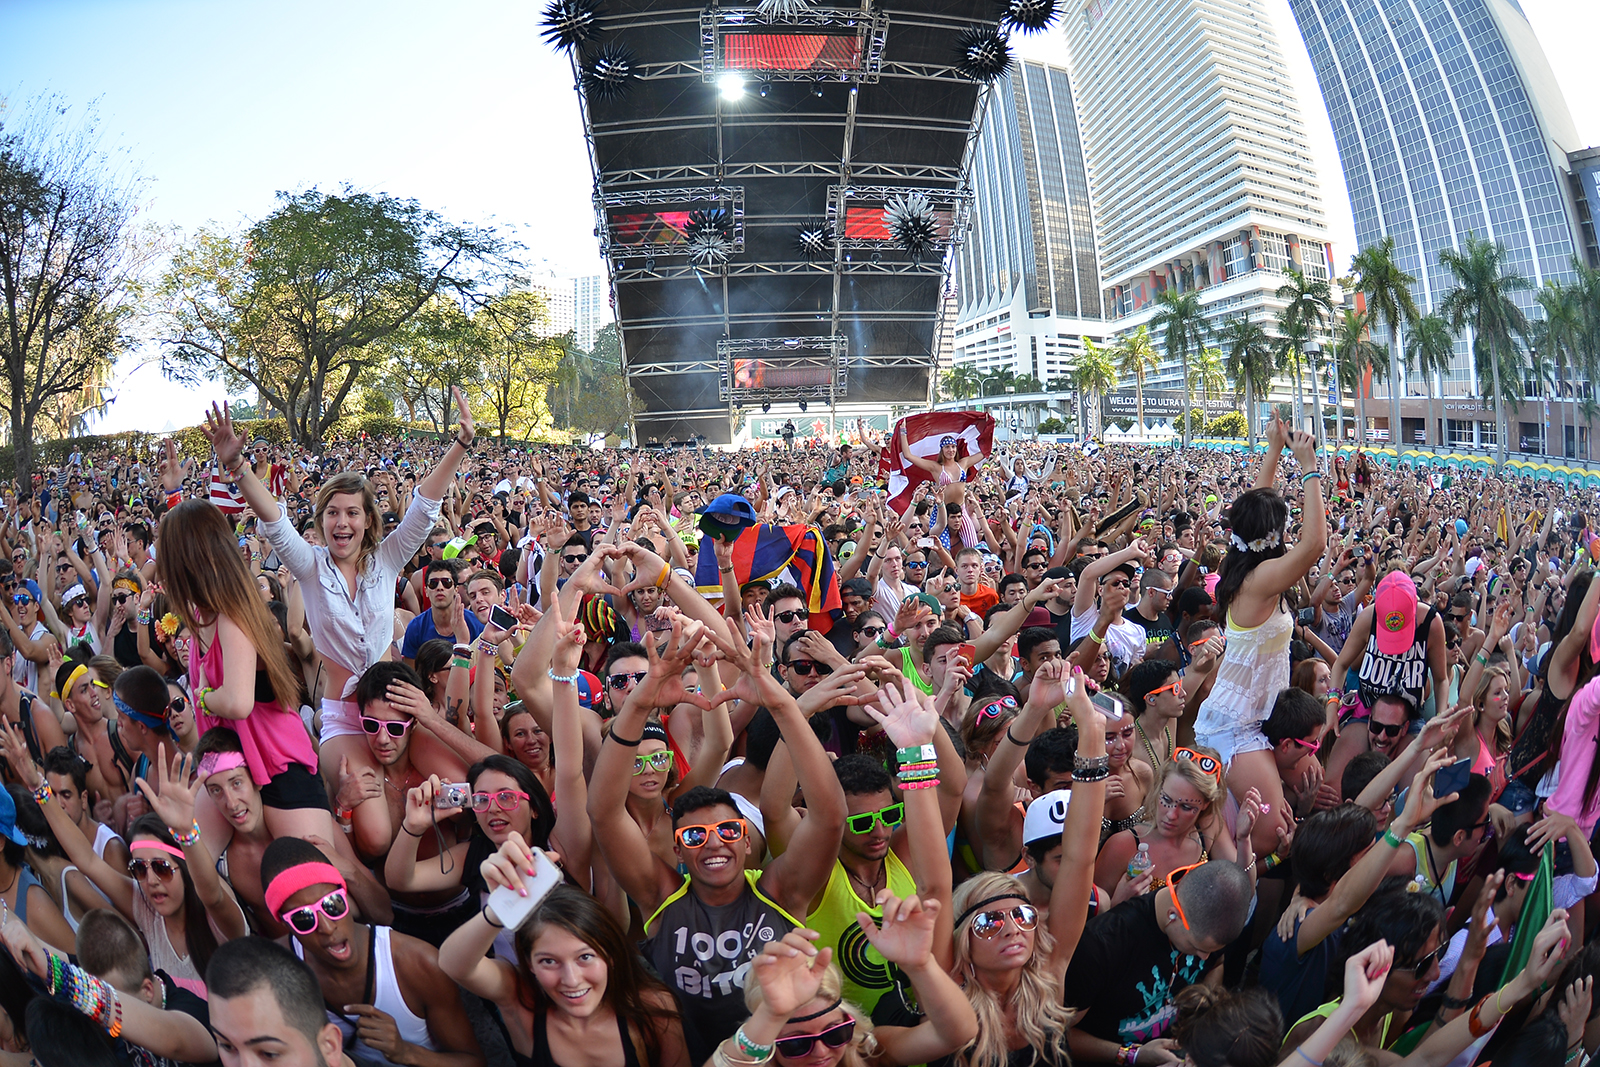 Five tips to consider before attending Ultra Music Festival ...